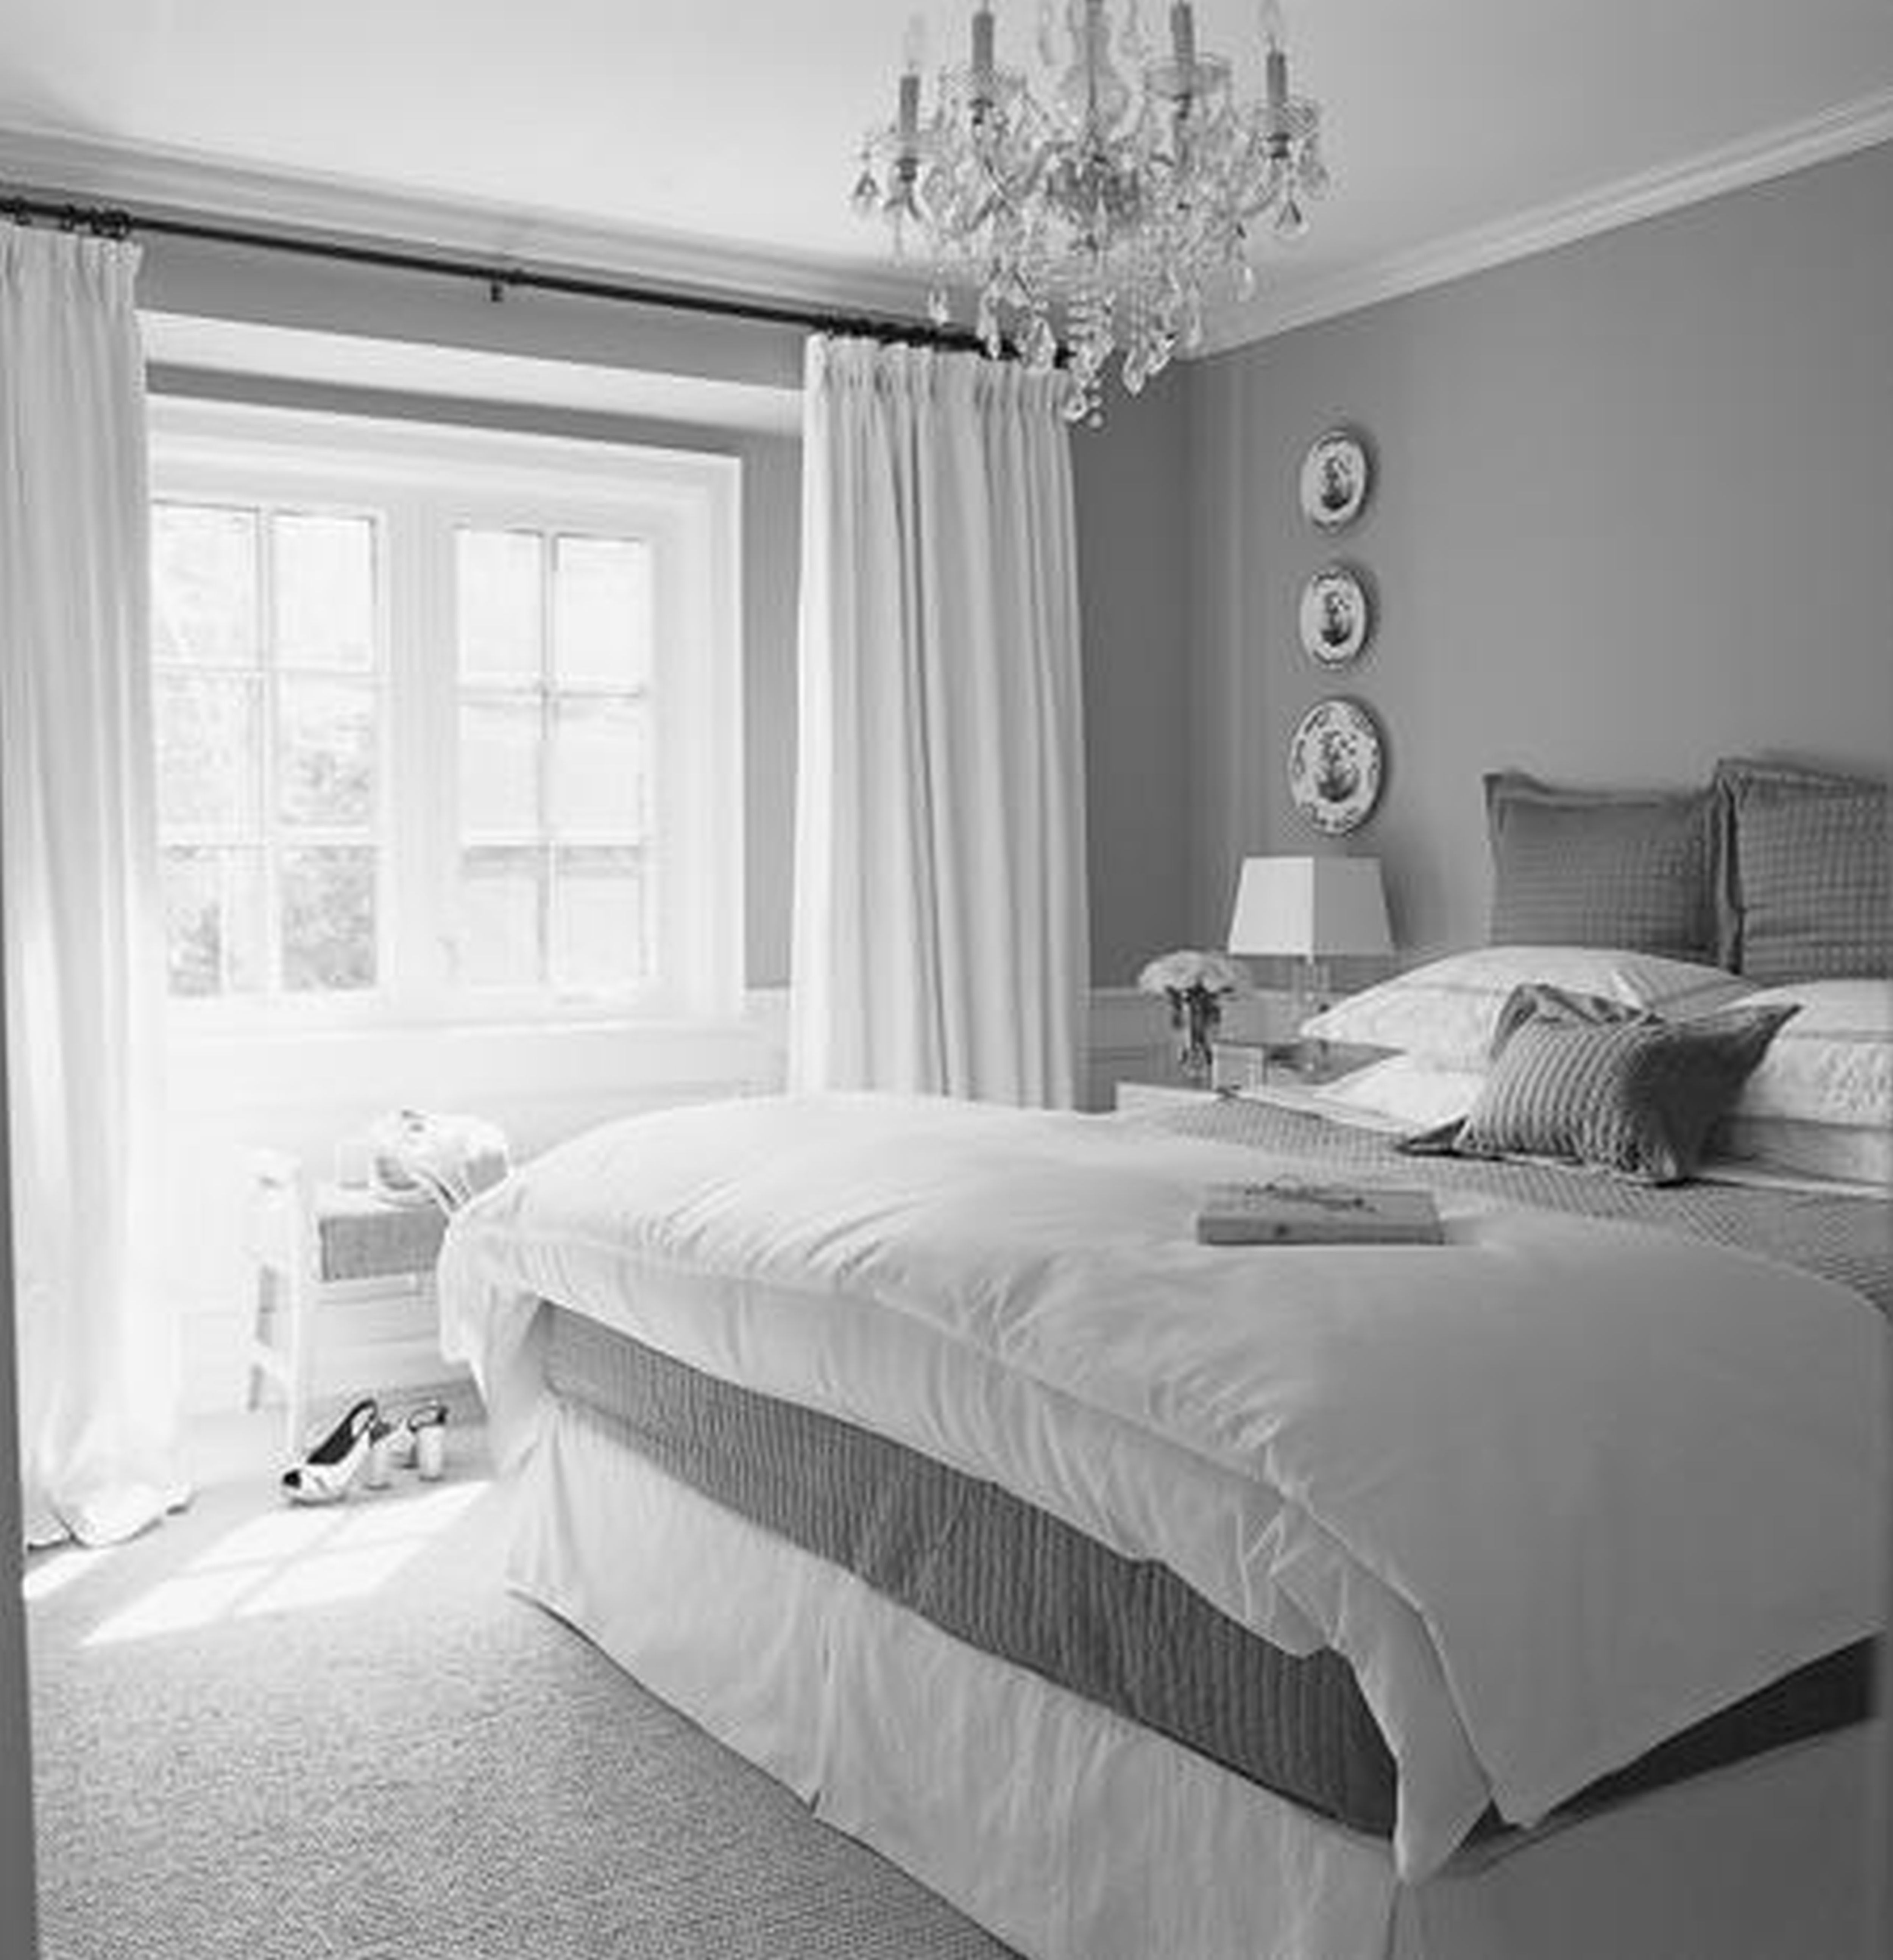 Best Grey Bedroom Ideas And Designs Atmosphere Bedrooms Master Themed Black White Colors Bedding Design Paint Pink By Color Page 59 Apppie Org